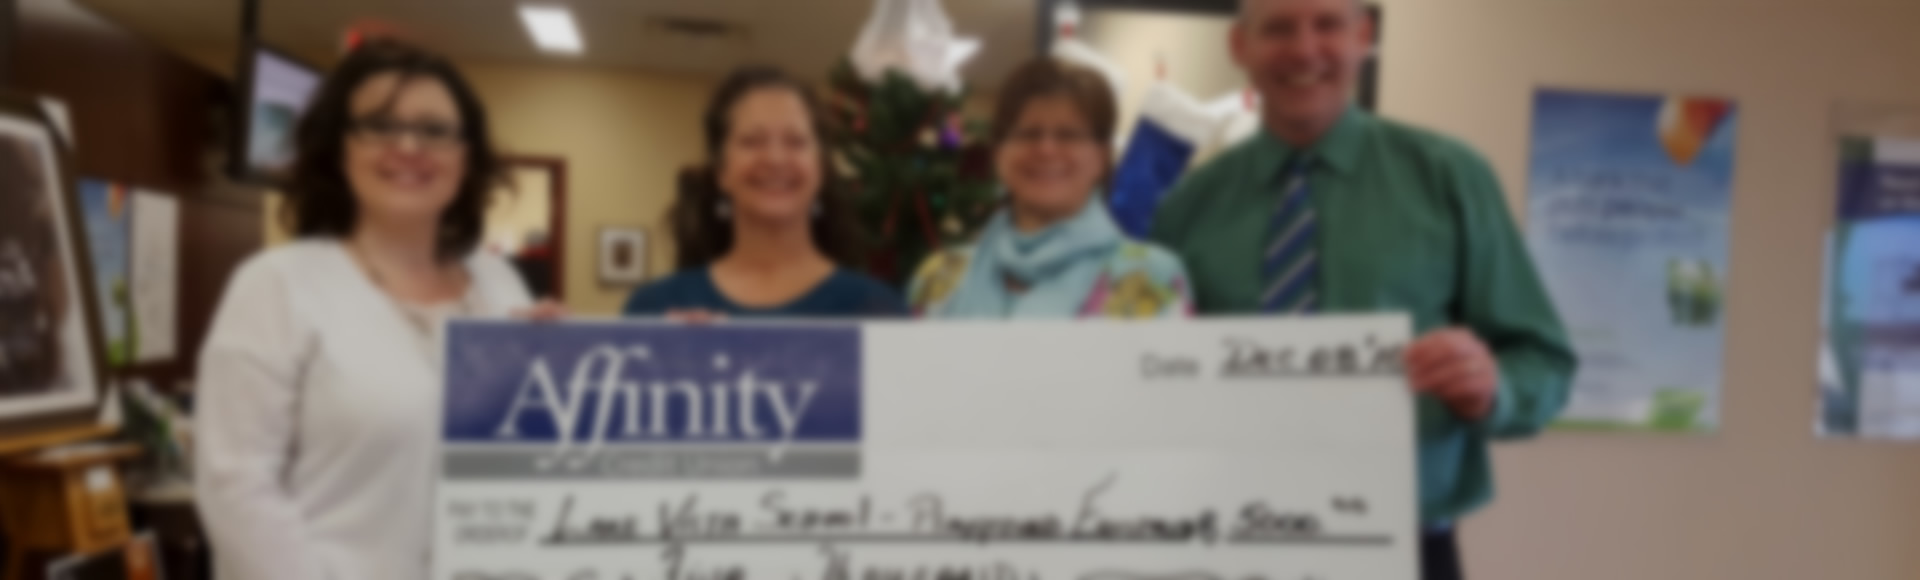 Playground Donation from Affinity Credit Union